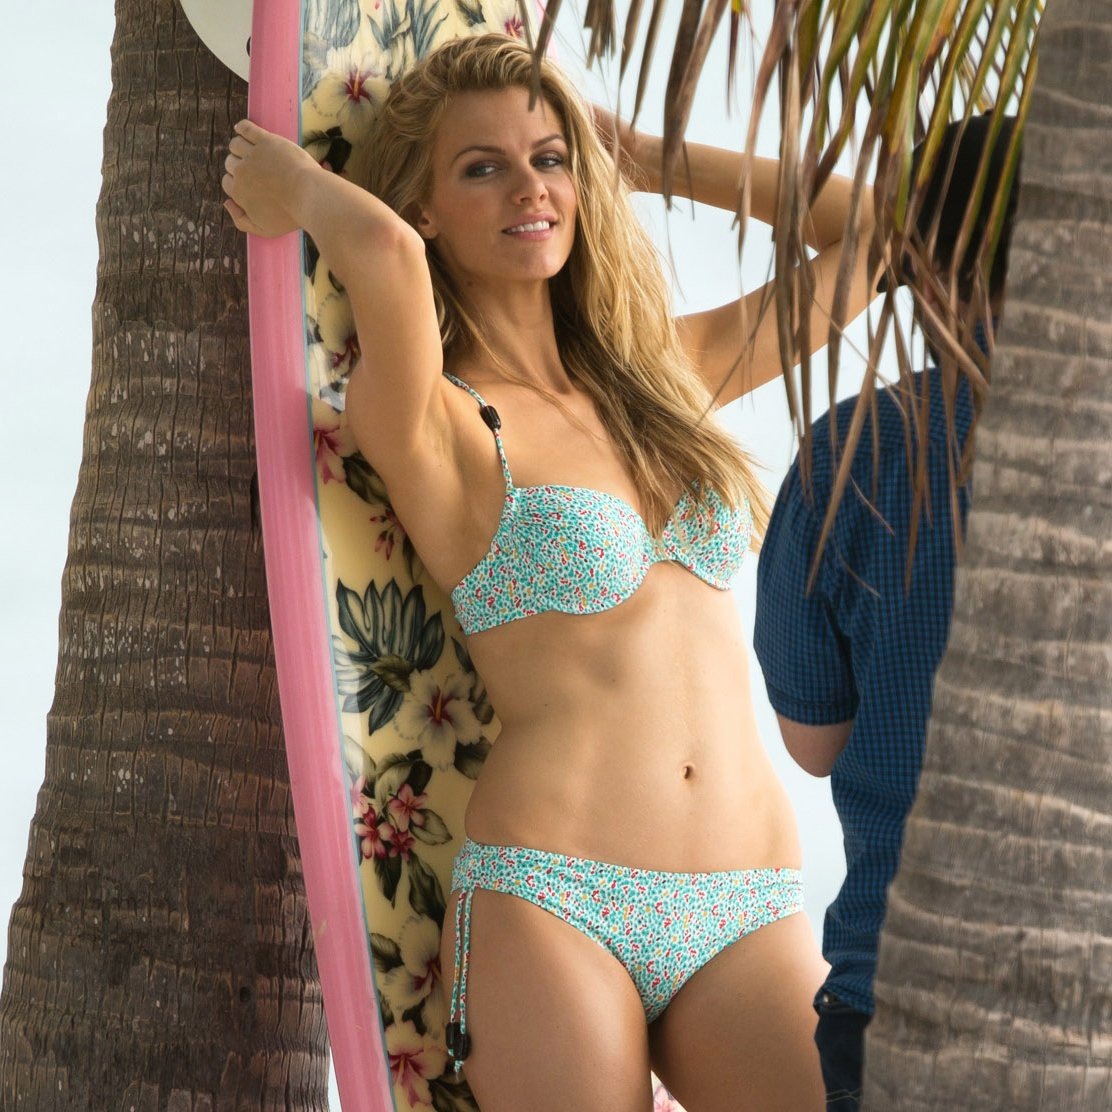 Brooklyn Decker beautiful pic